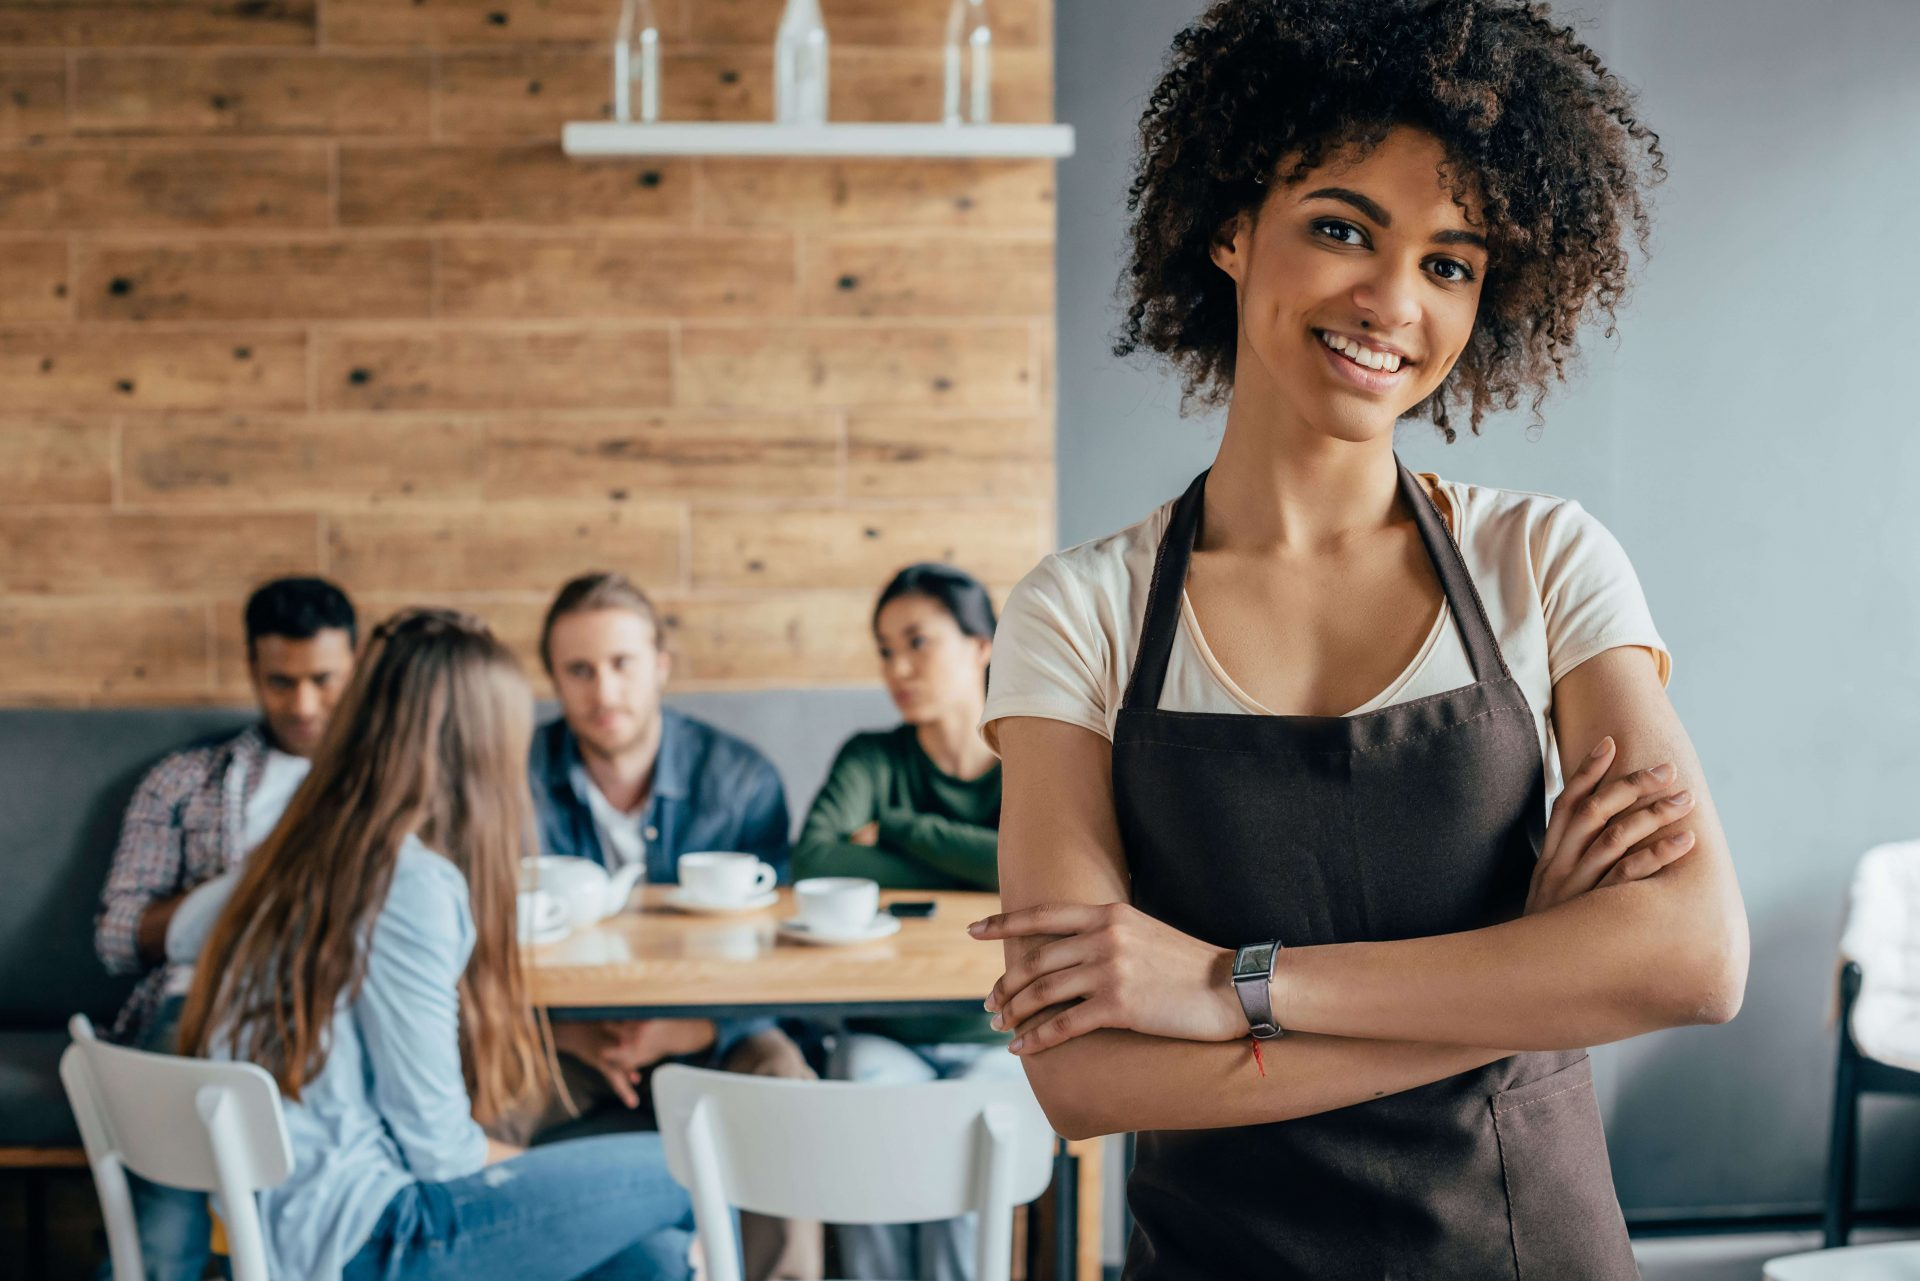 Quick Service Restaurant (QSR) Market Insights For 2019